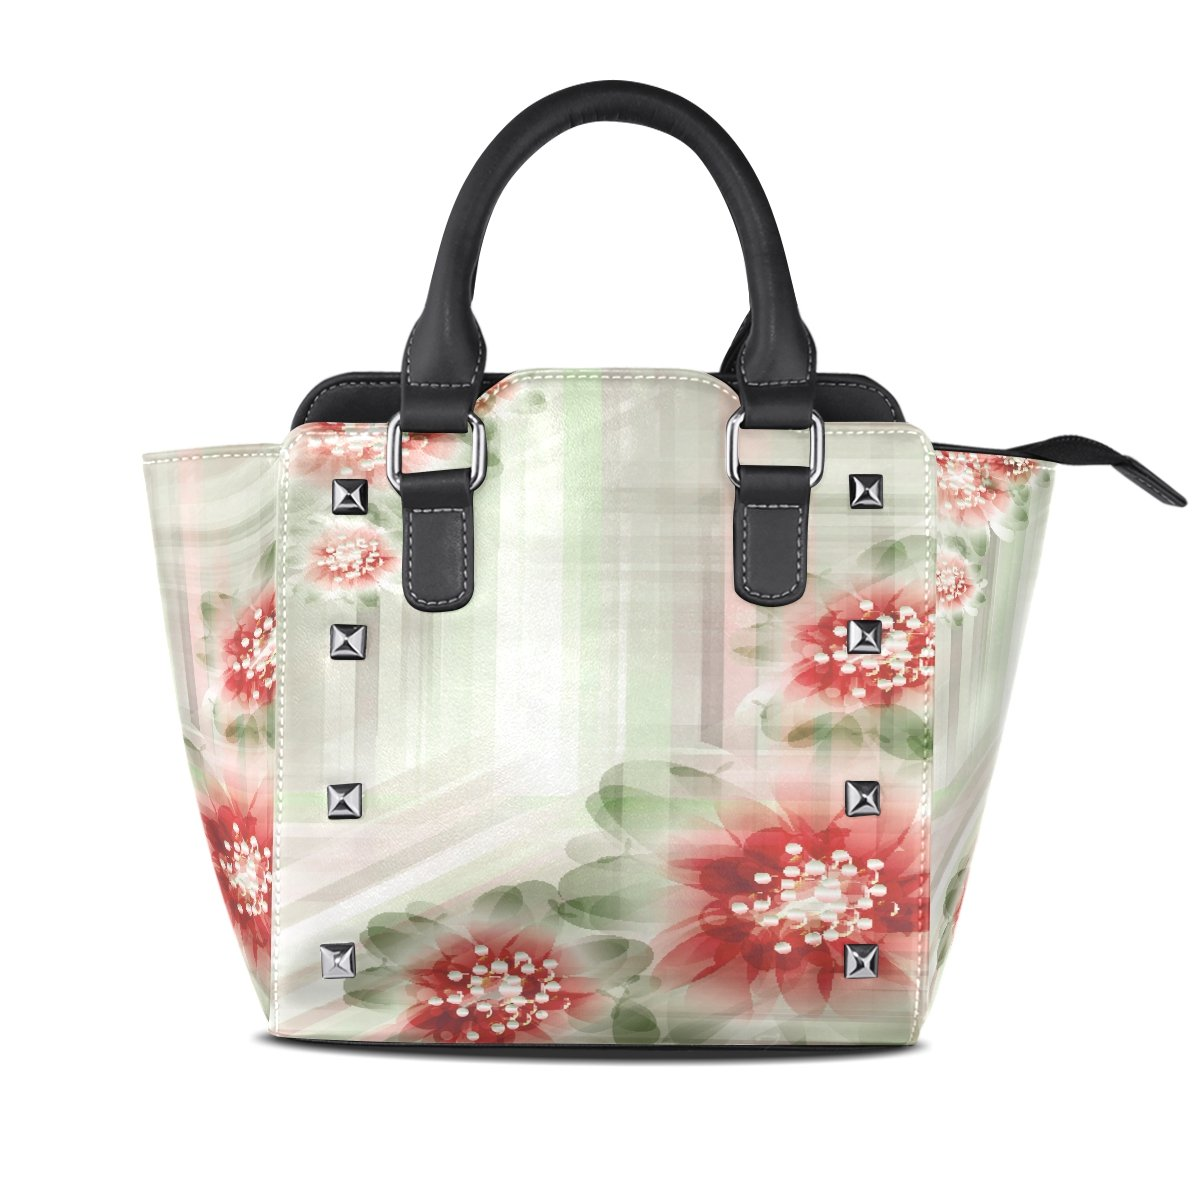 Womens Genuine Leather Hangbags Tote Bags Flowers Purse Shoulder Bags